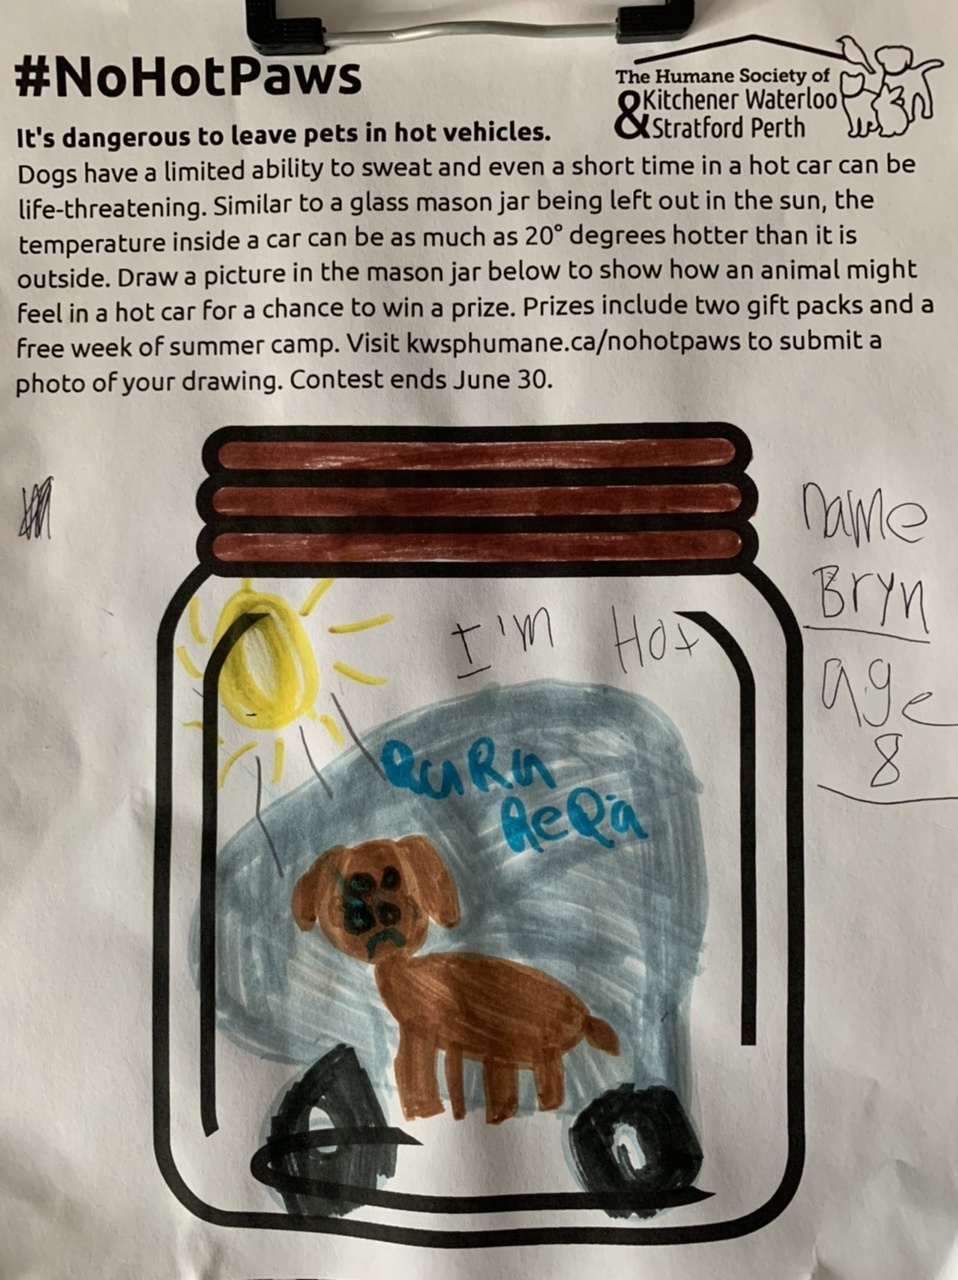 A dog in a car on a hot, sunny day who needs help by Bryn Baker (age 8)